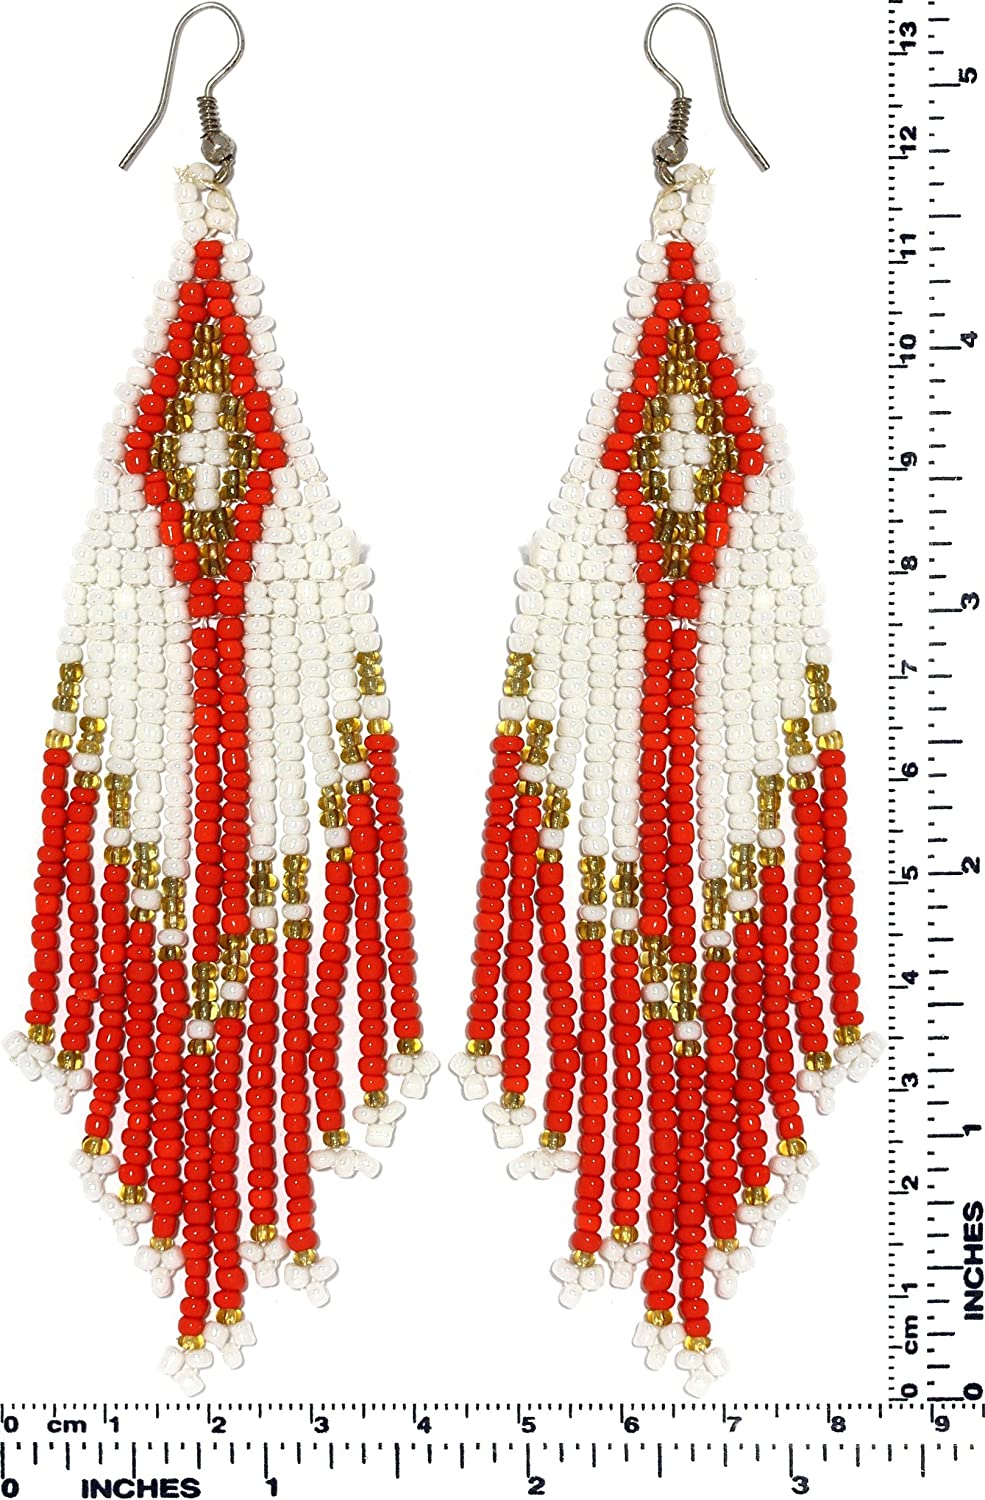 Native American Beaded Earrings Patterns Free Amazing Decorating Design